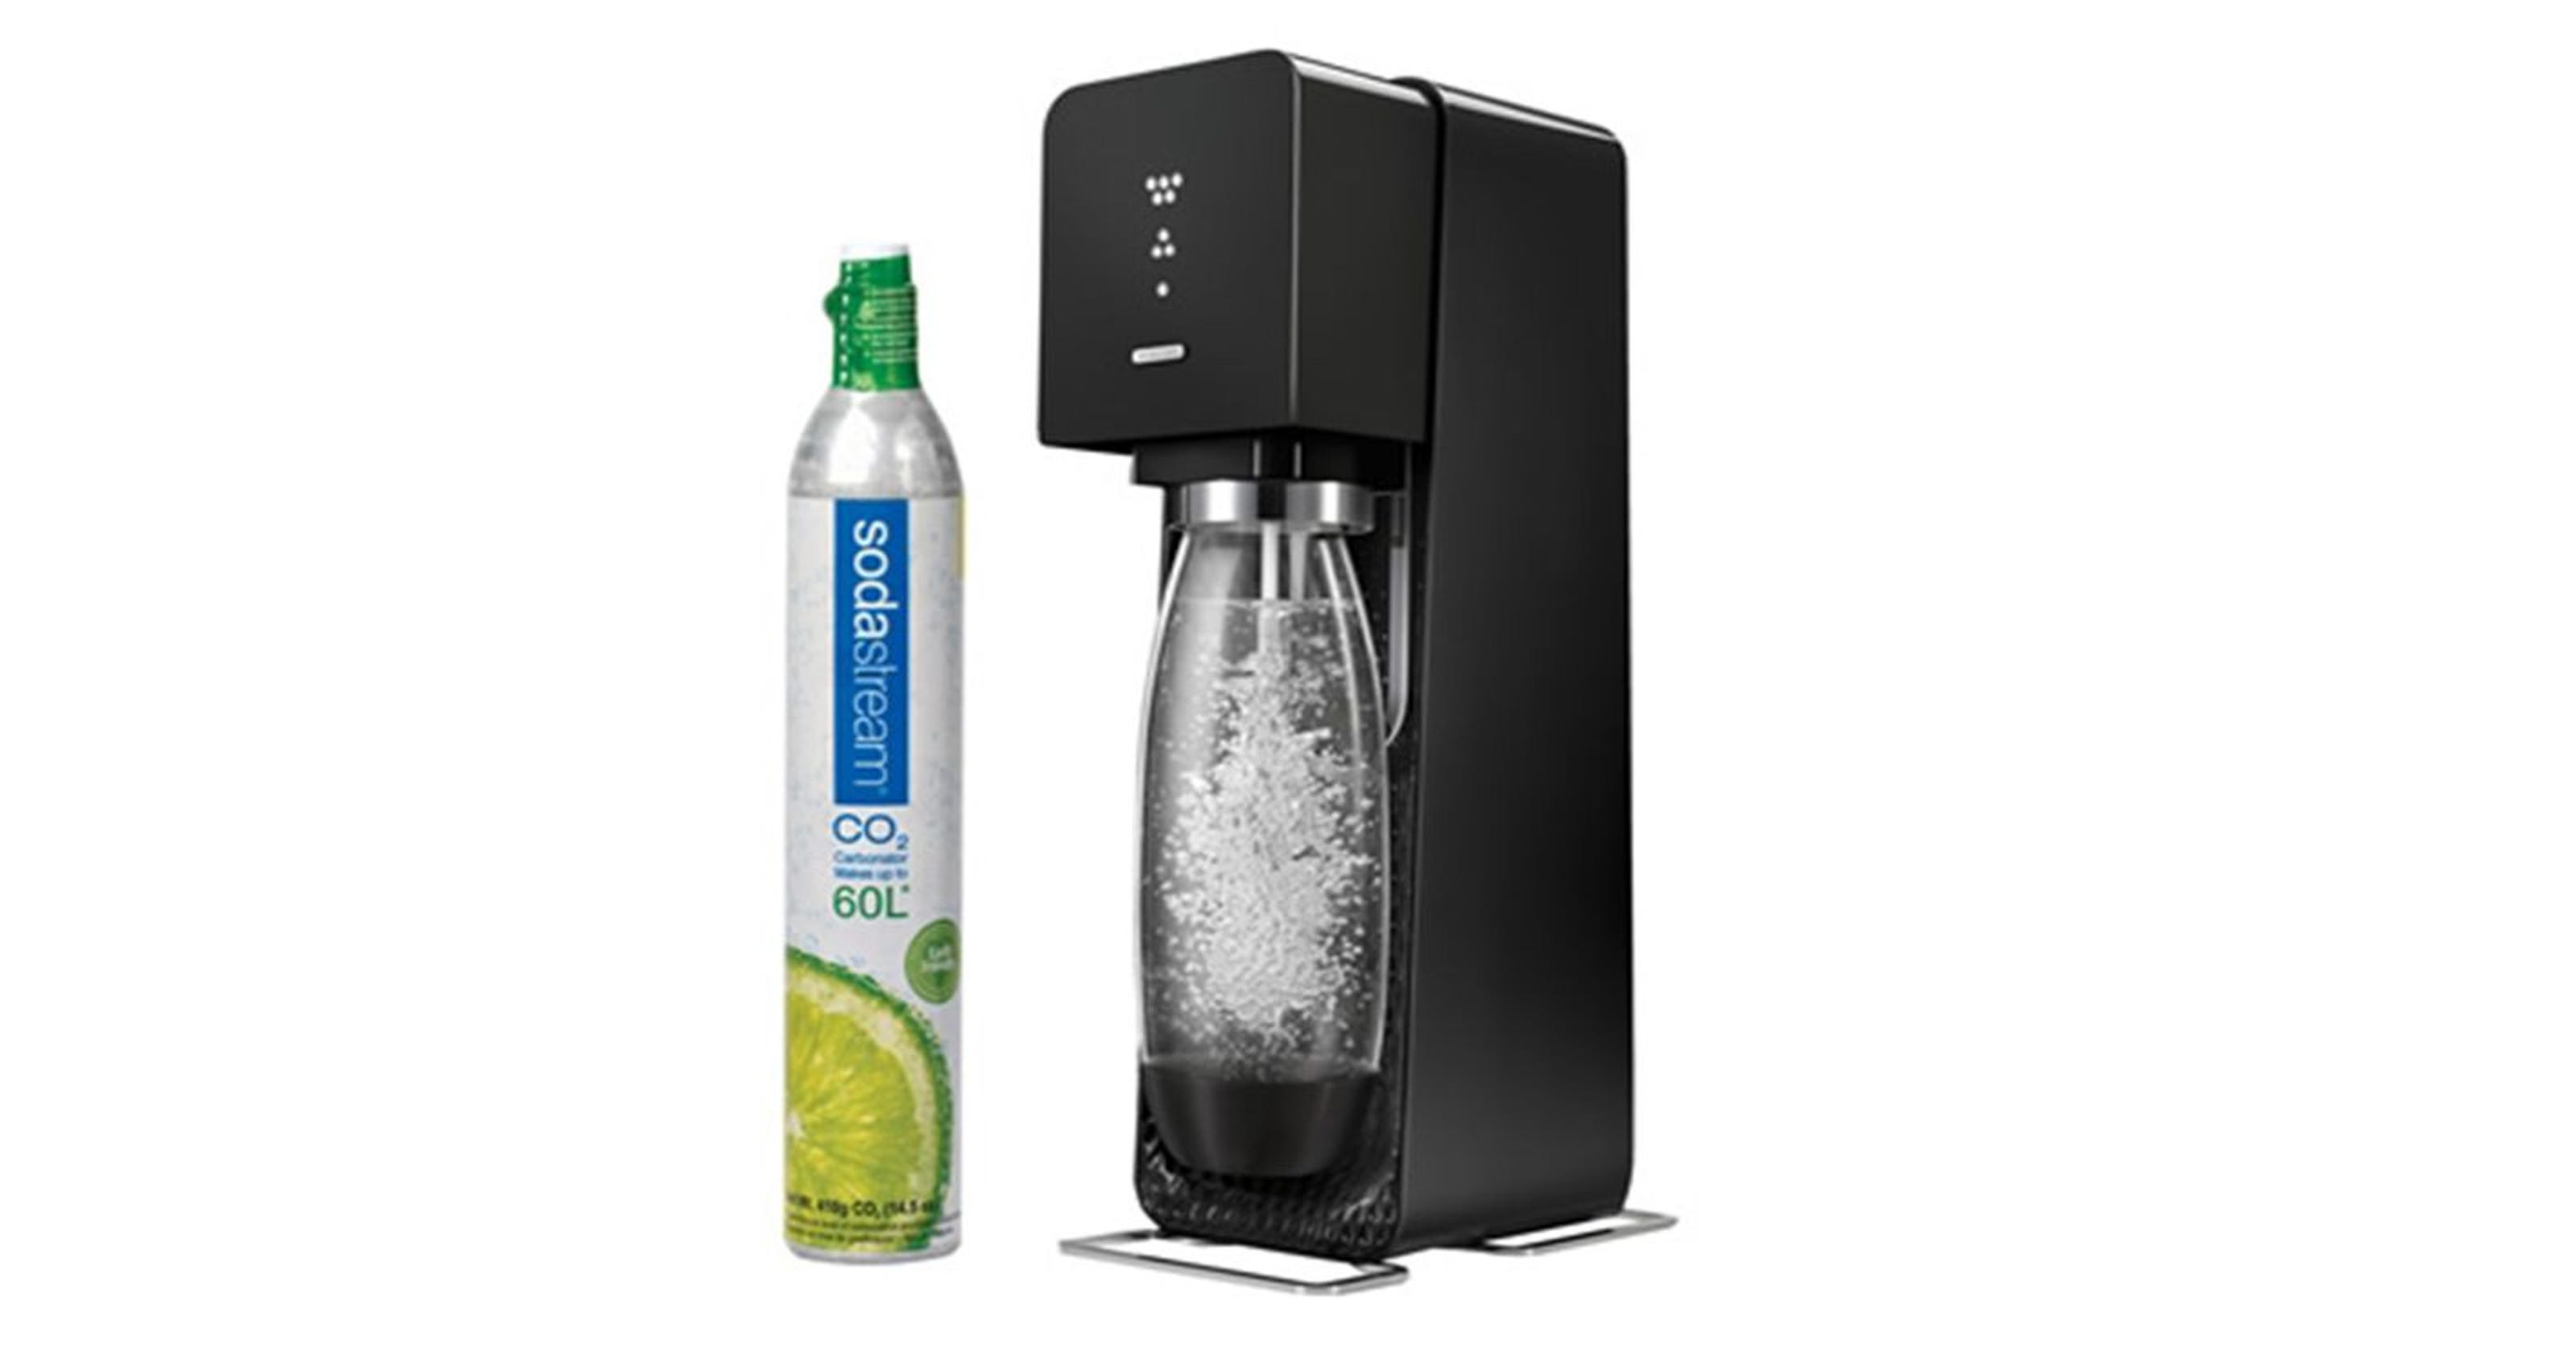 The best-selling SodaStream is 38% off on Amazon right now